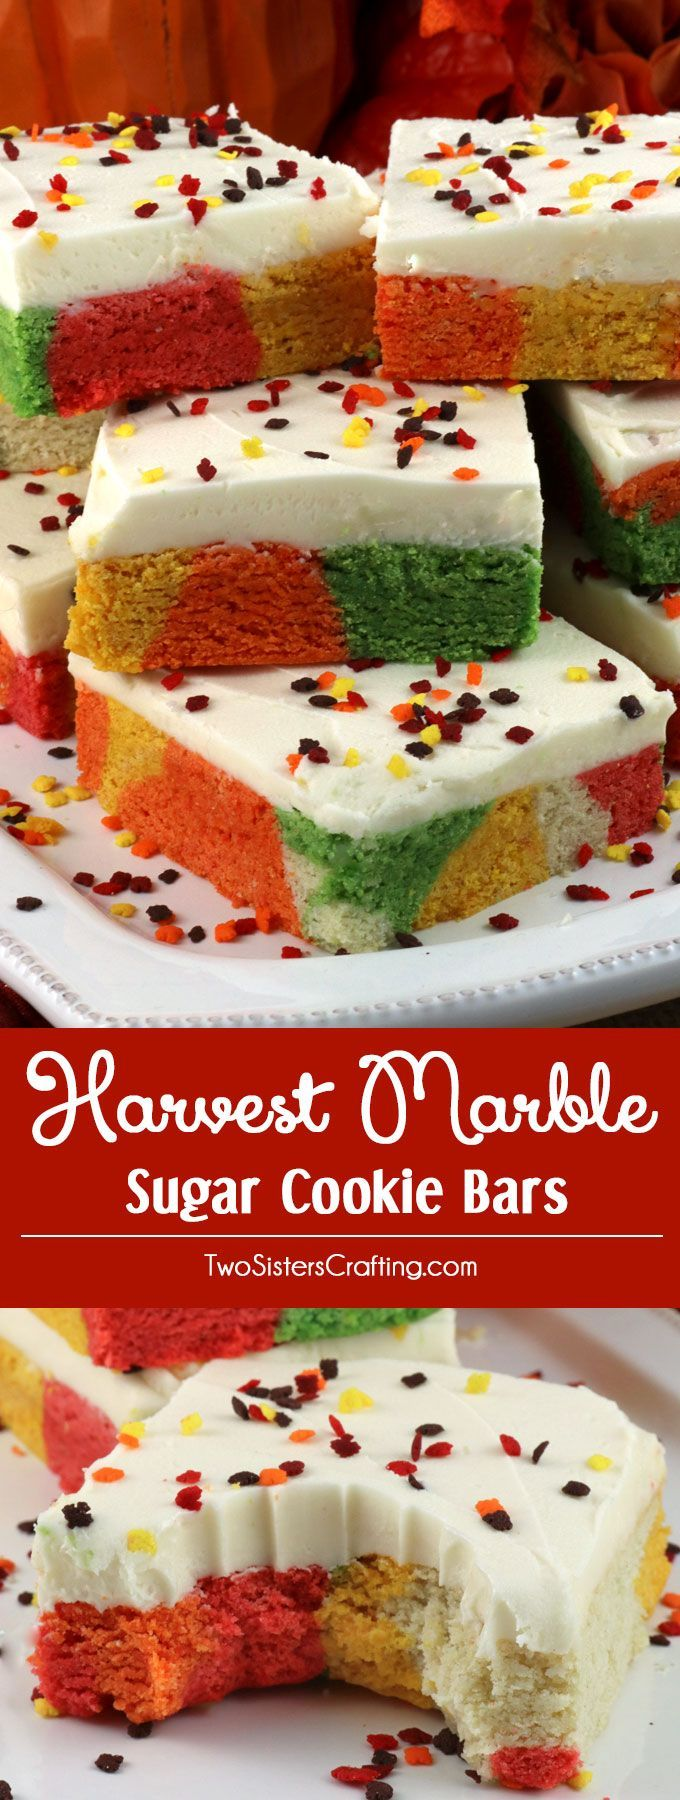 Harvest Marble Sugar Cookie Bars- a unique take on a Frosted Sugar Cookie in gorgeous fall colors and topped with yummy buttercream frosting. A great Fall Treat or Thanksgiving Dessert. Make your family a Marble Dessert Bar that they are sure to love! Pin this Thanksgiving treat for later and follow us for more more great Thanksgiving Food ideas.